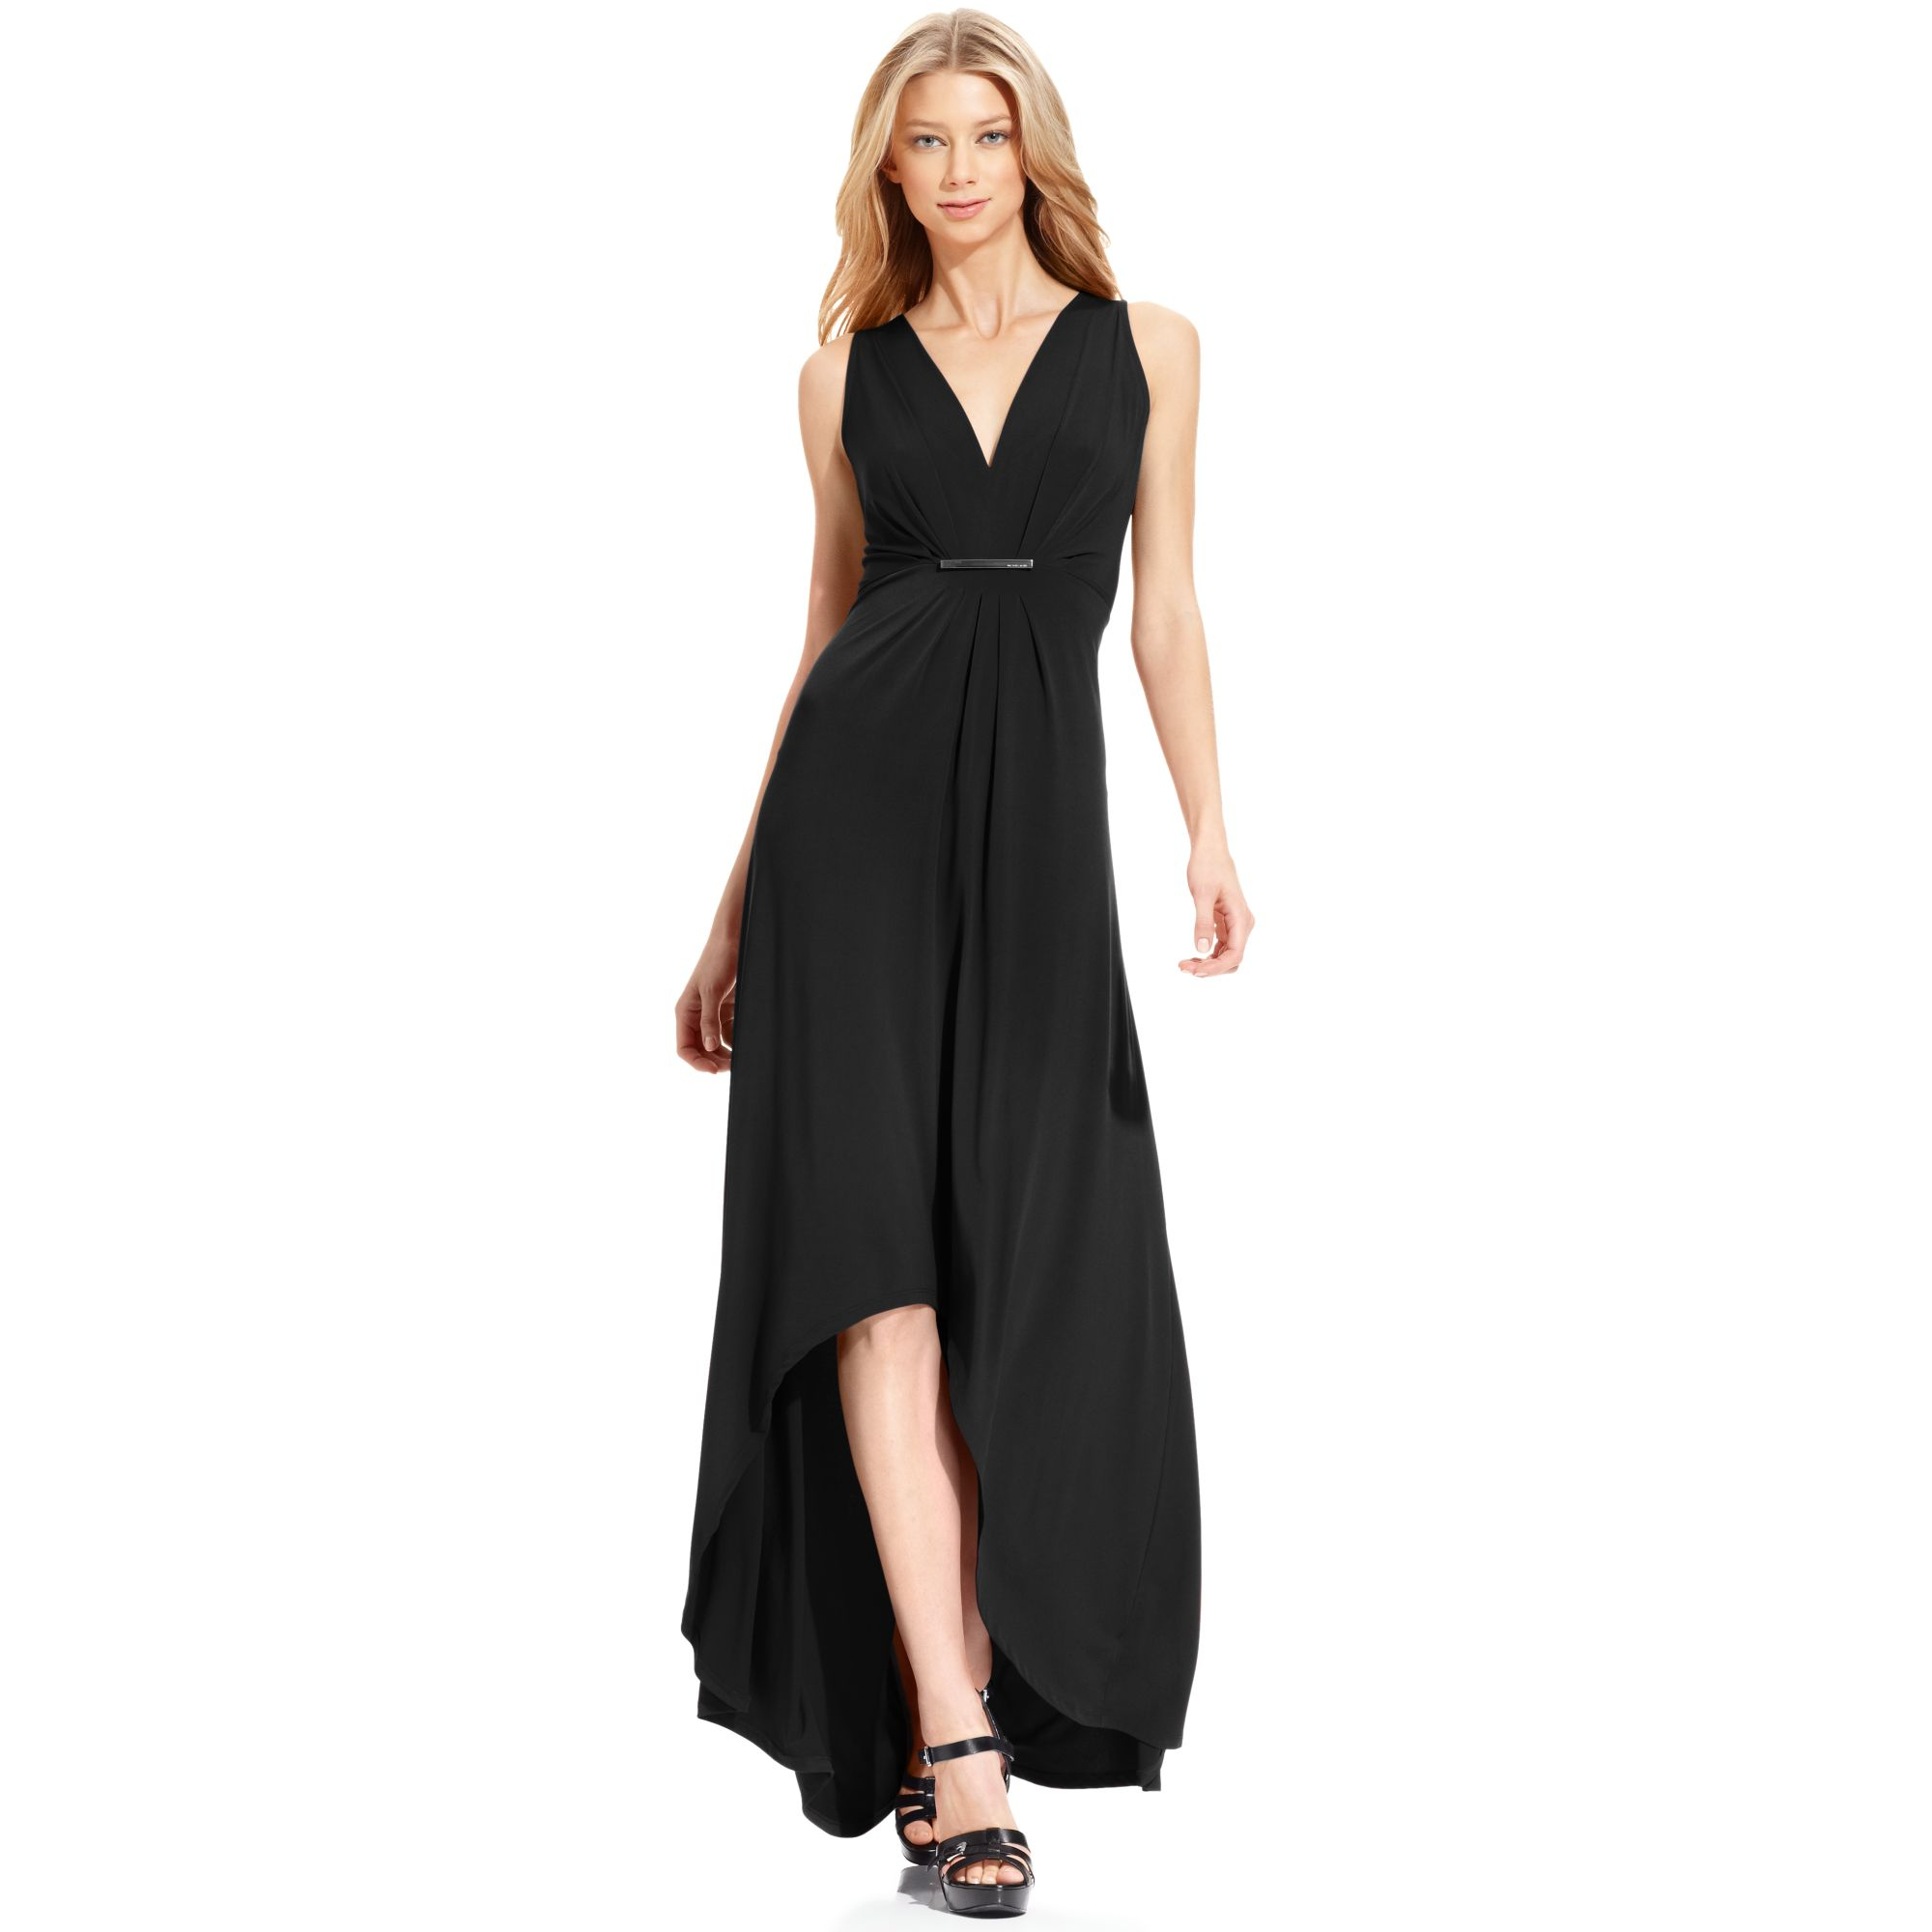 Michael Kors Sleeveless High Low Maxi Dress In Black Lyst